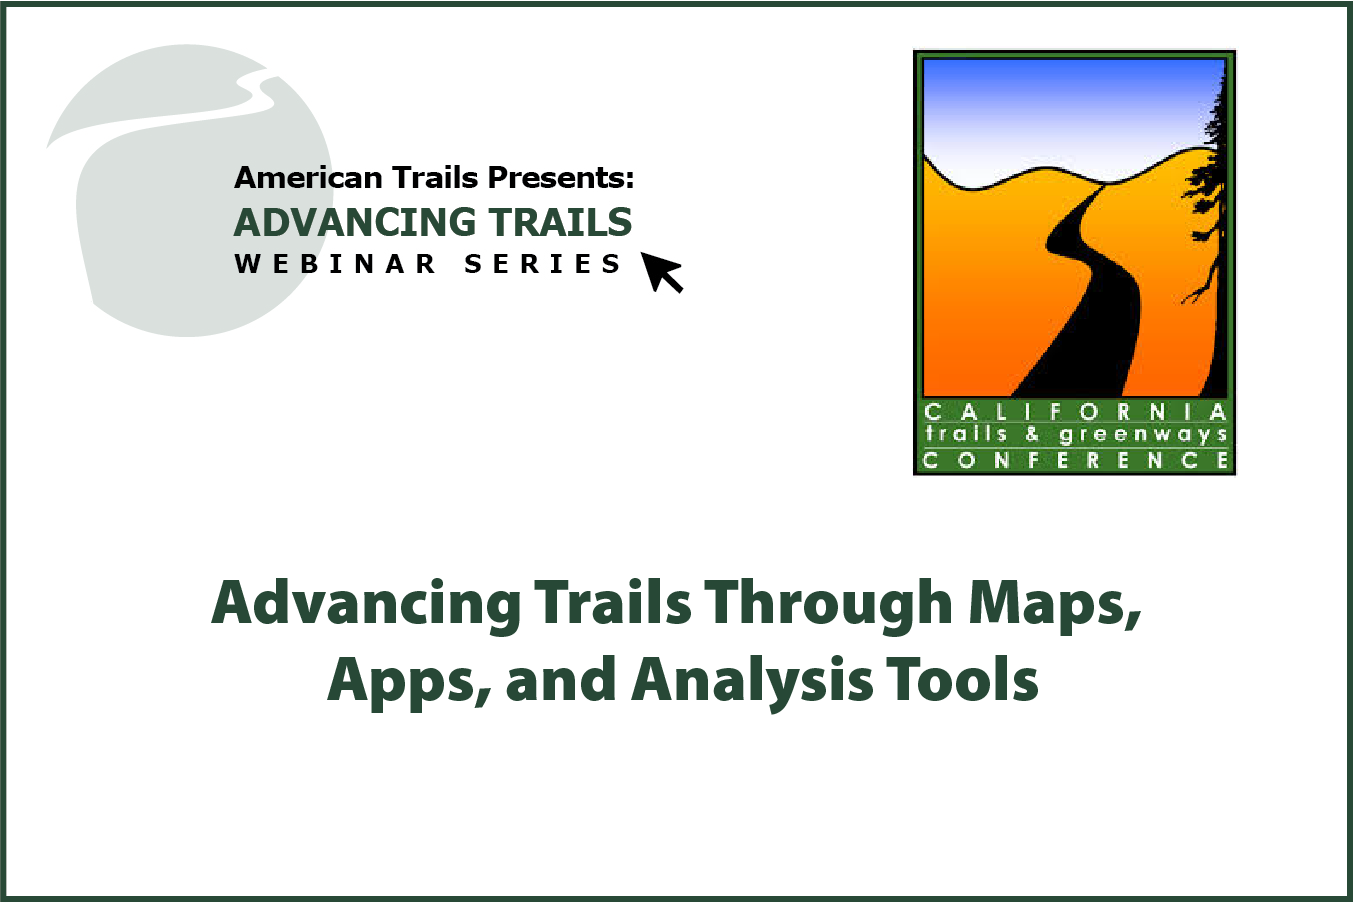 Advancing Trails Through Maps, Apps, and Analysis Tools (RECORDING)